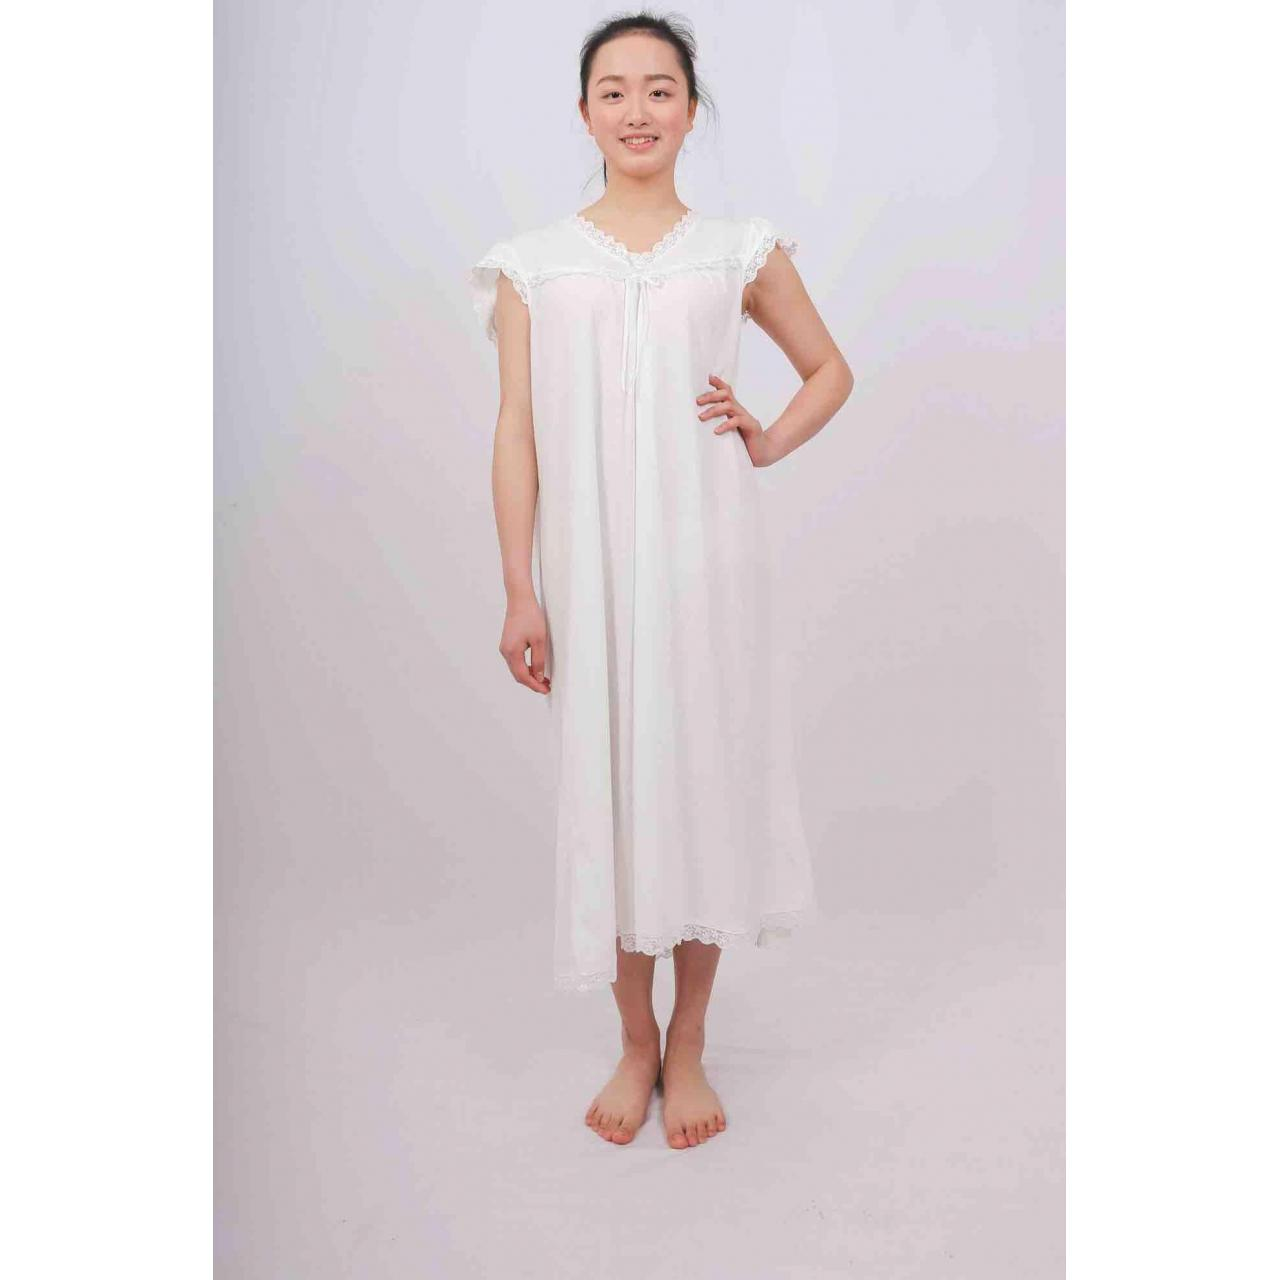 Quality clothing. clothes Lady's Knit Dress for sale